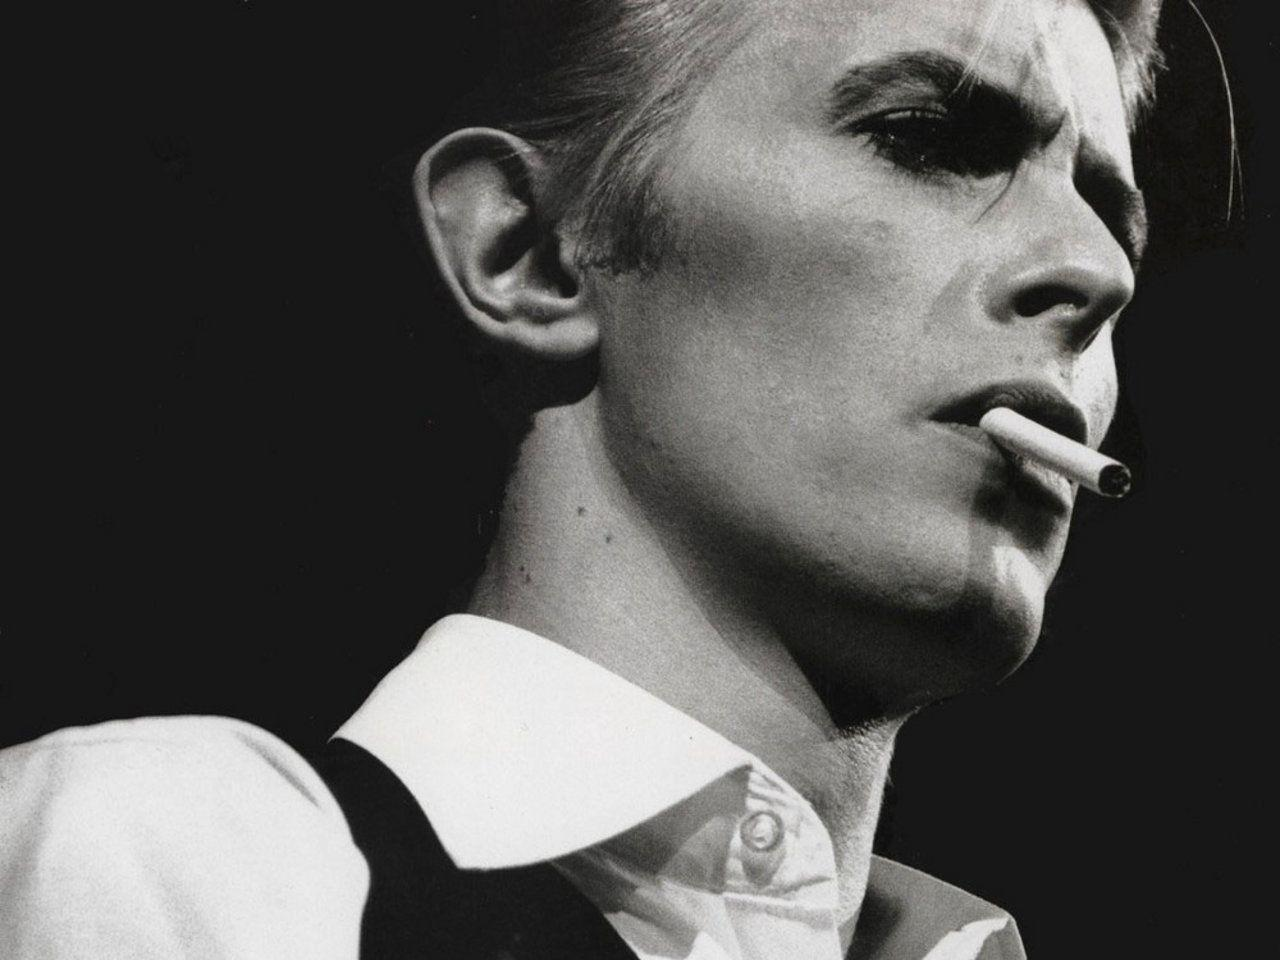 David Bowie Wallpapers - Wallpaper Cave